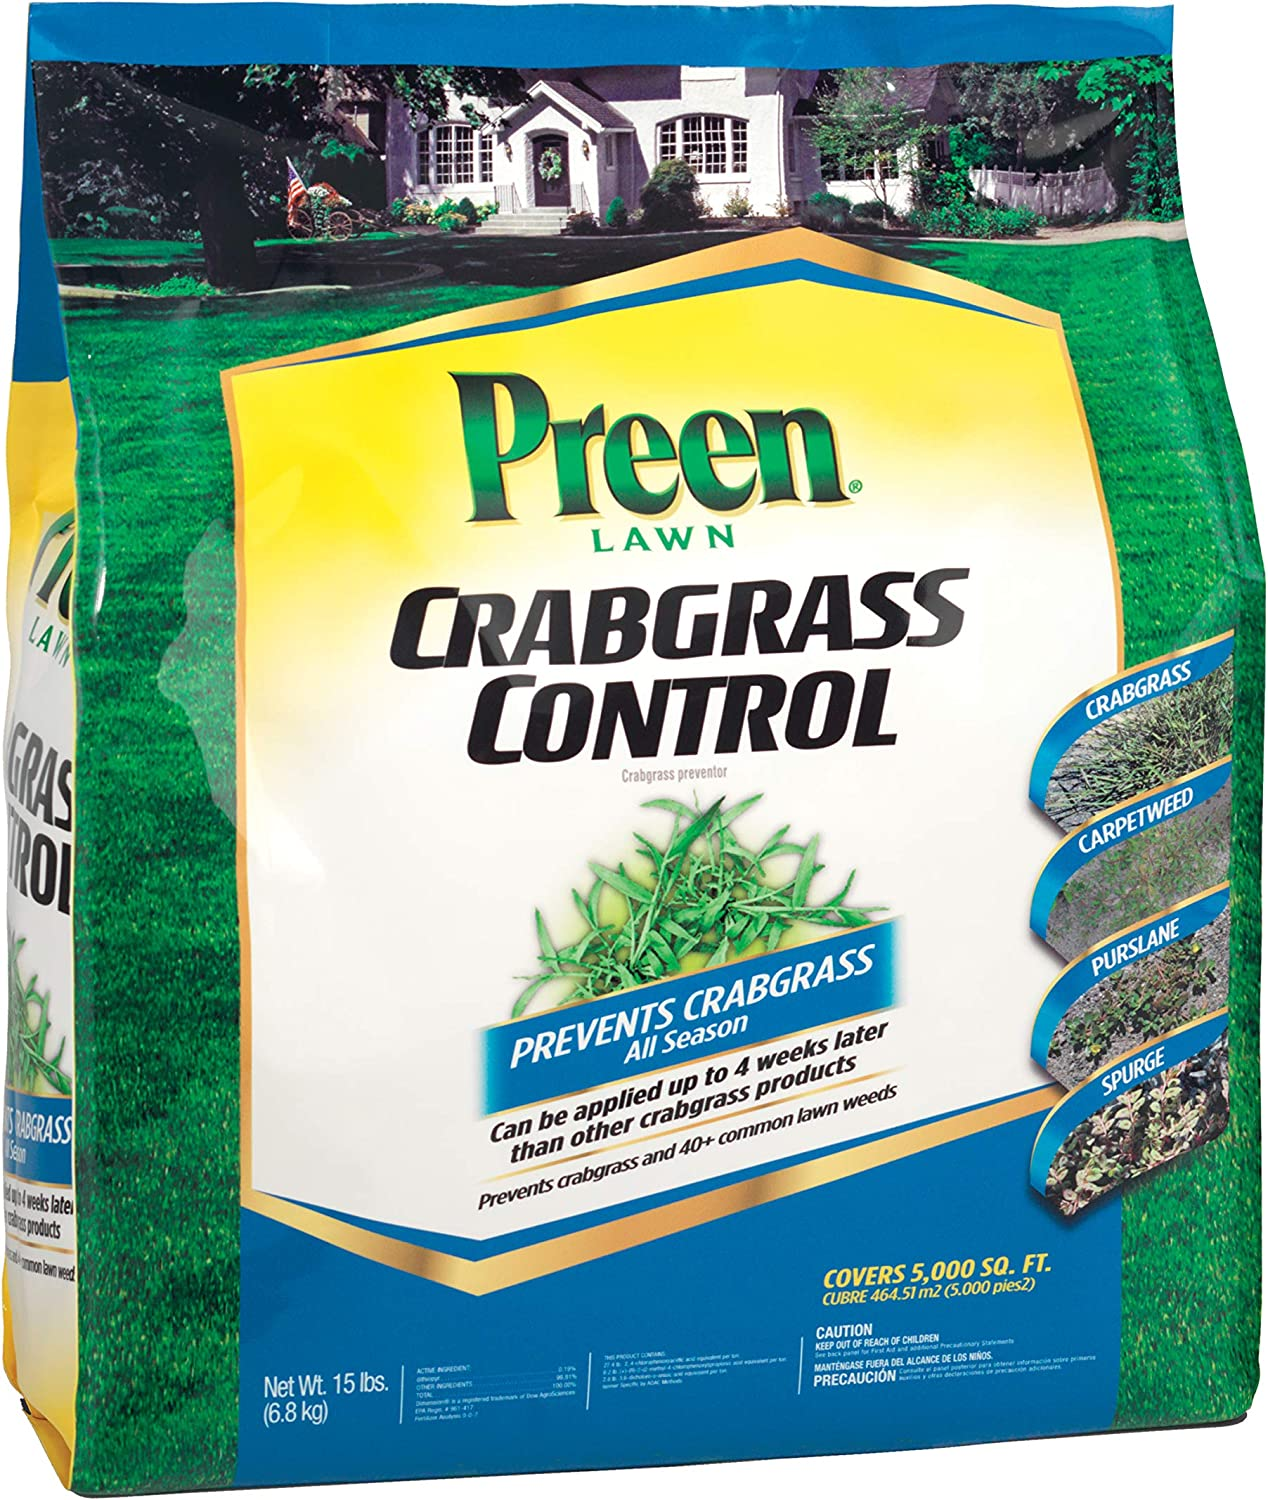 Preen 2464064 Lawn Crabgrass Control, 15 lb, Covers 5,000 sq. ft